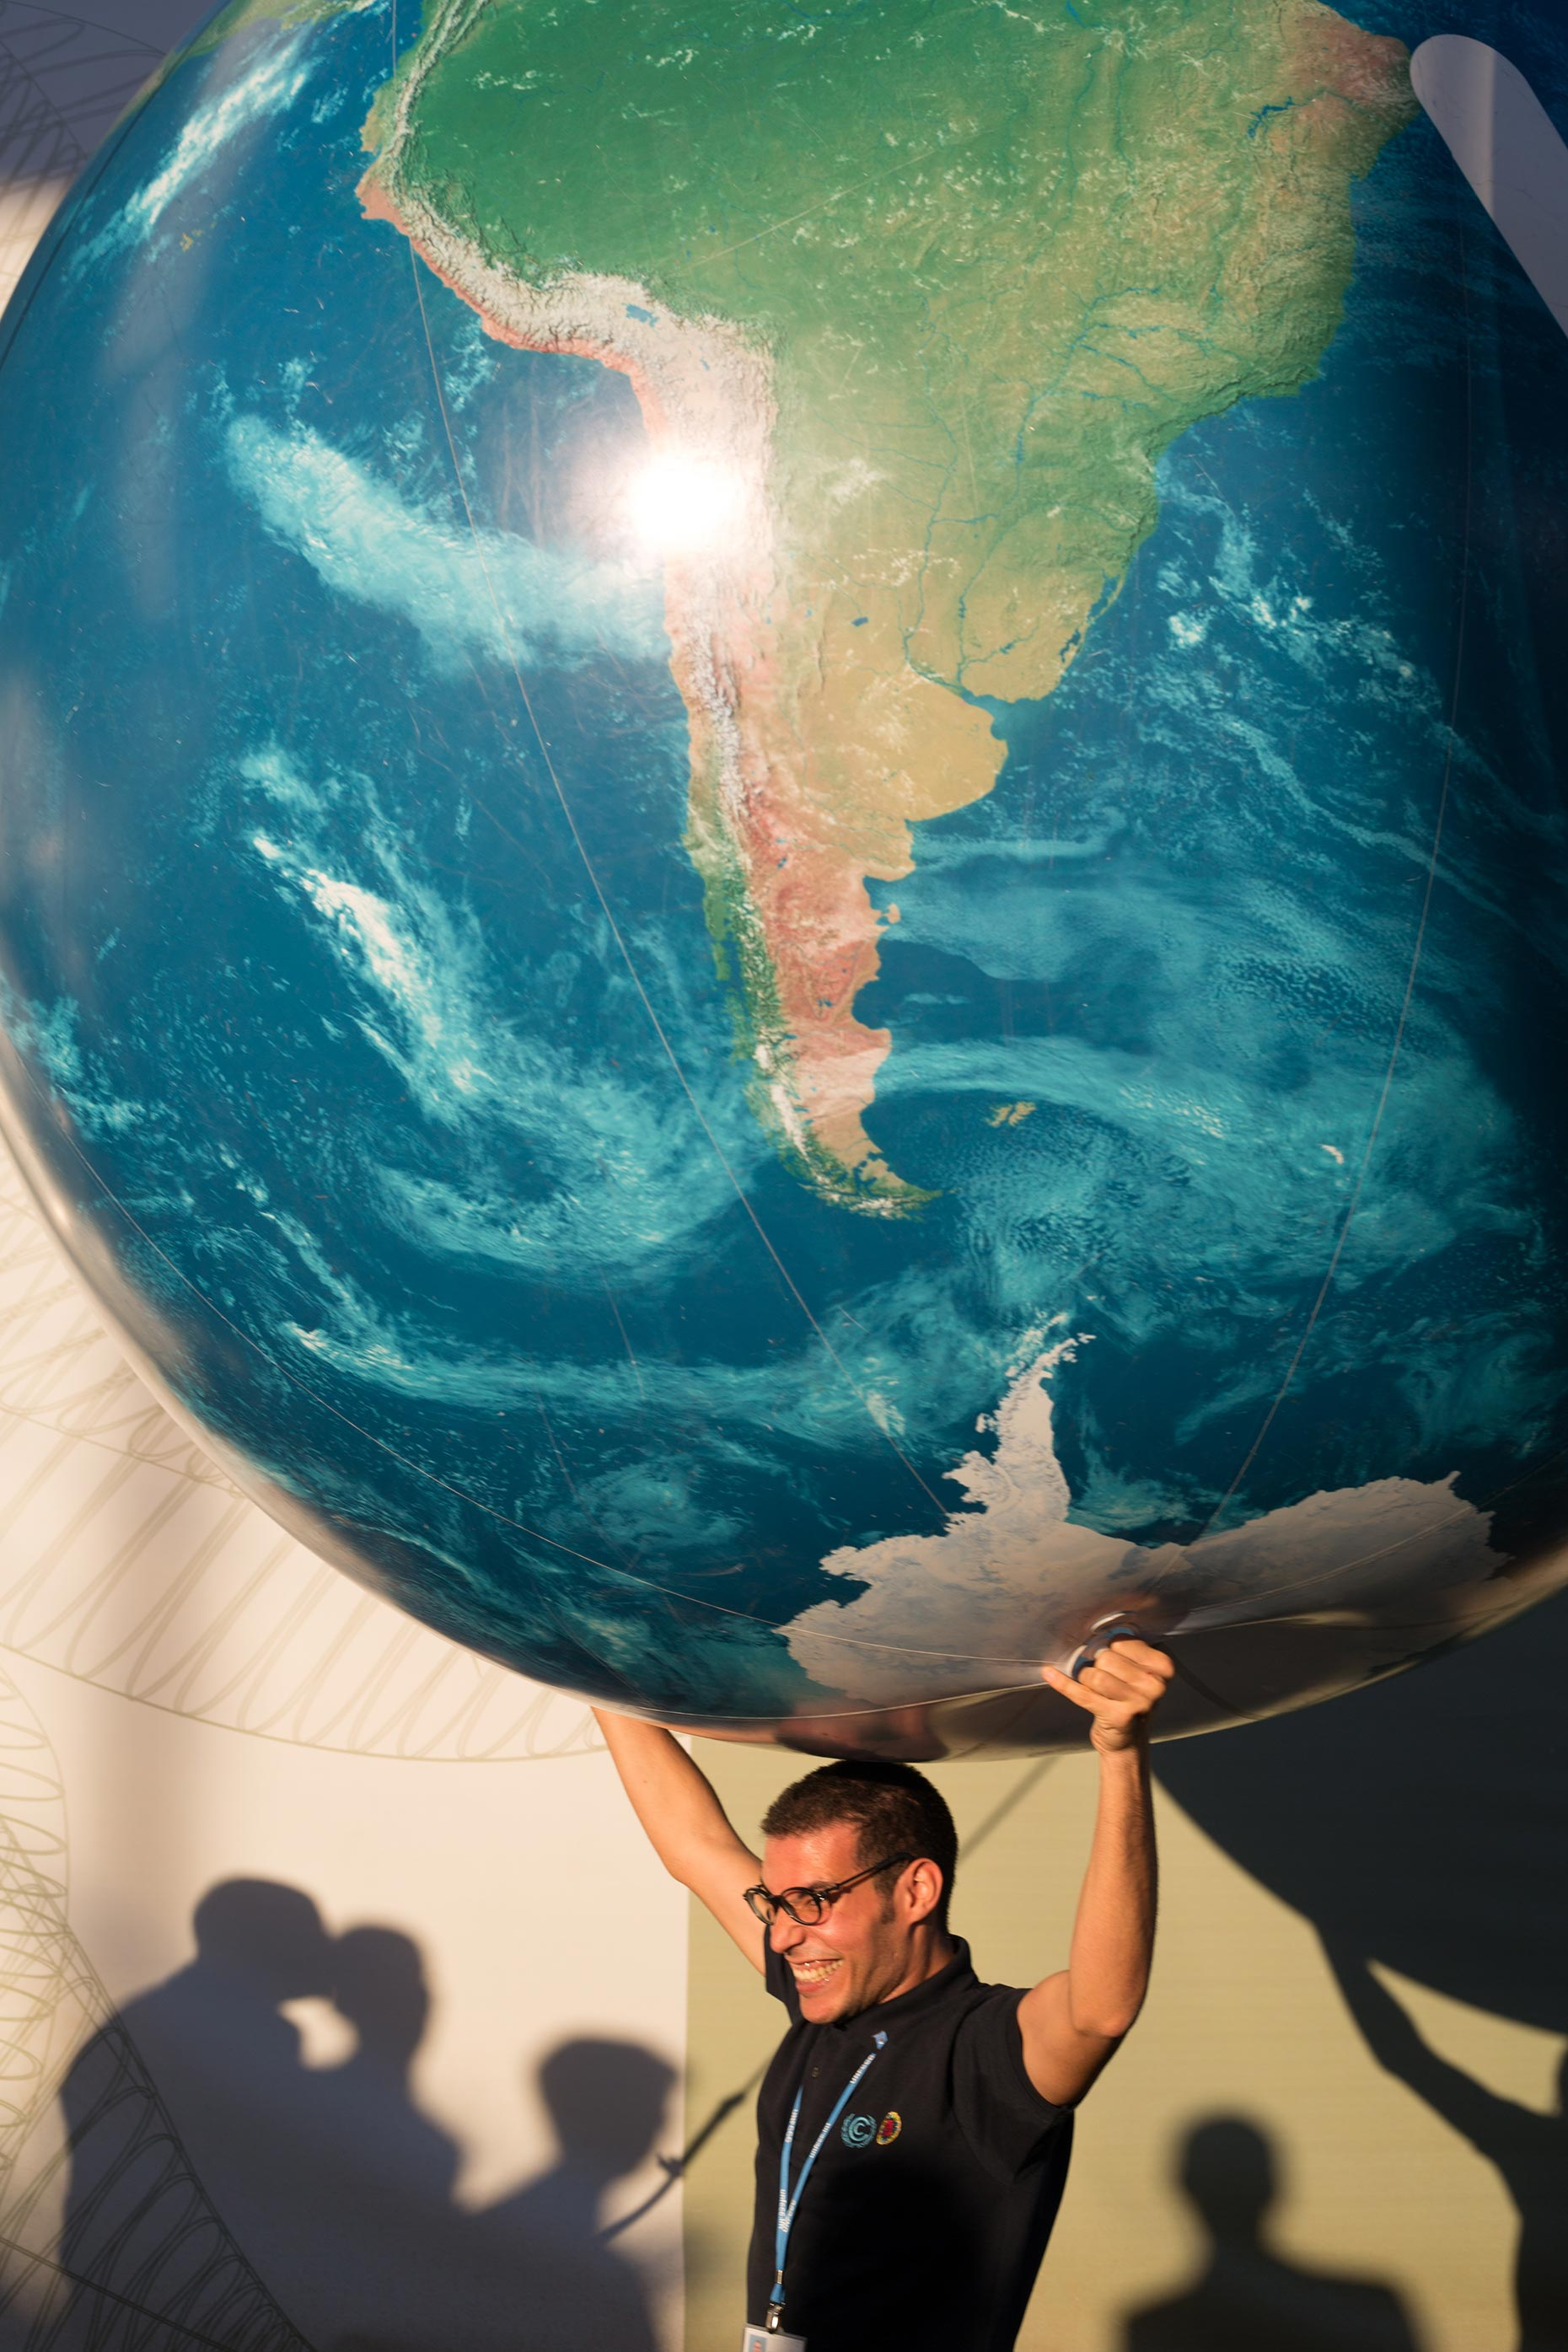 man holding inflatable world globe on shoulders, by Scotland Greenpeace photographer